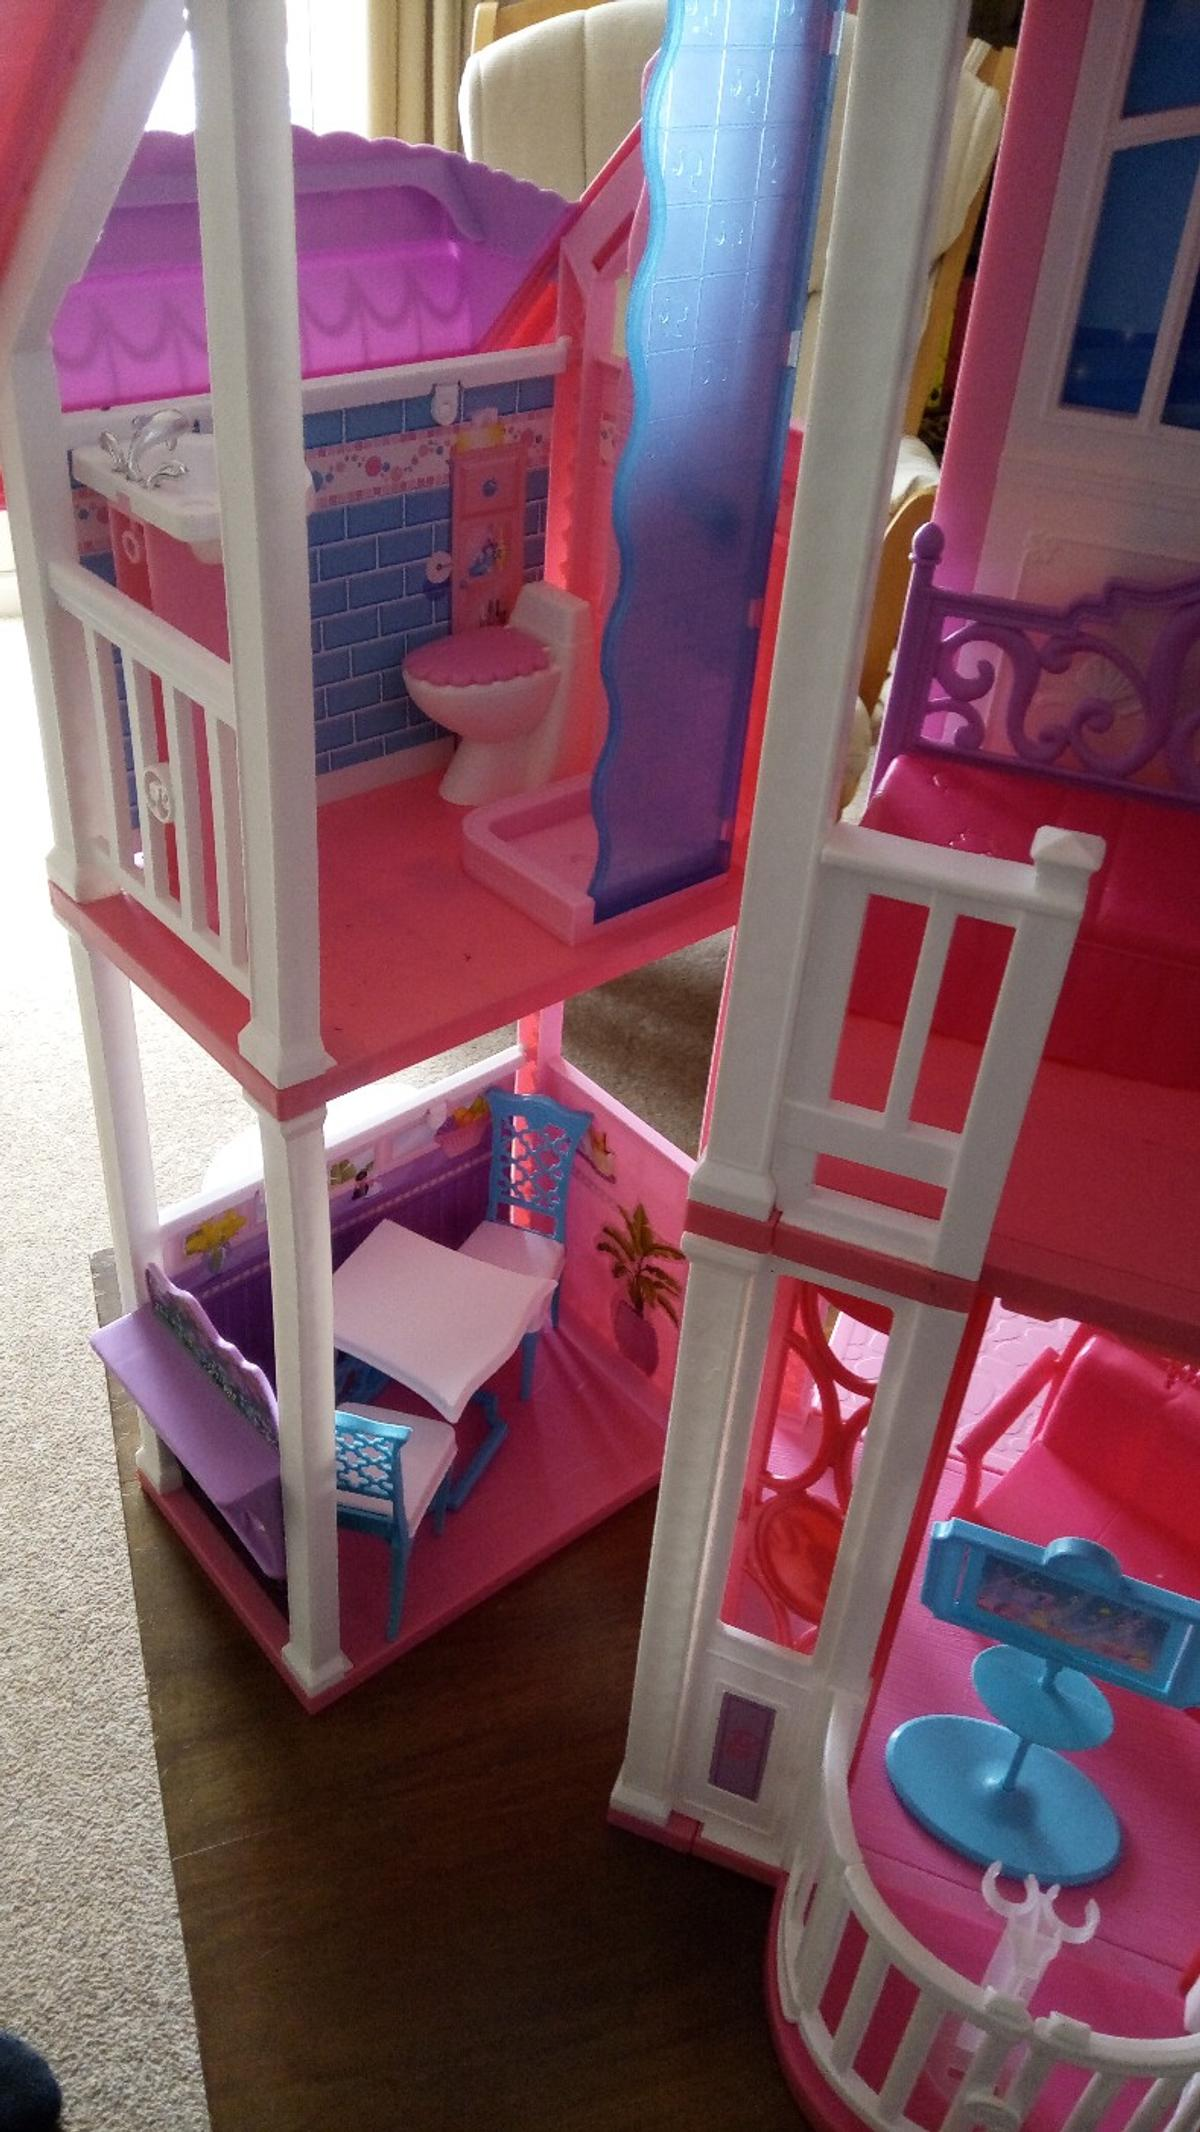 Barbie Dreamhouse For Sale In Hinckley And Bosworth For